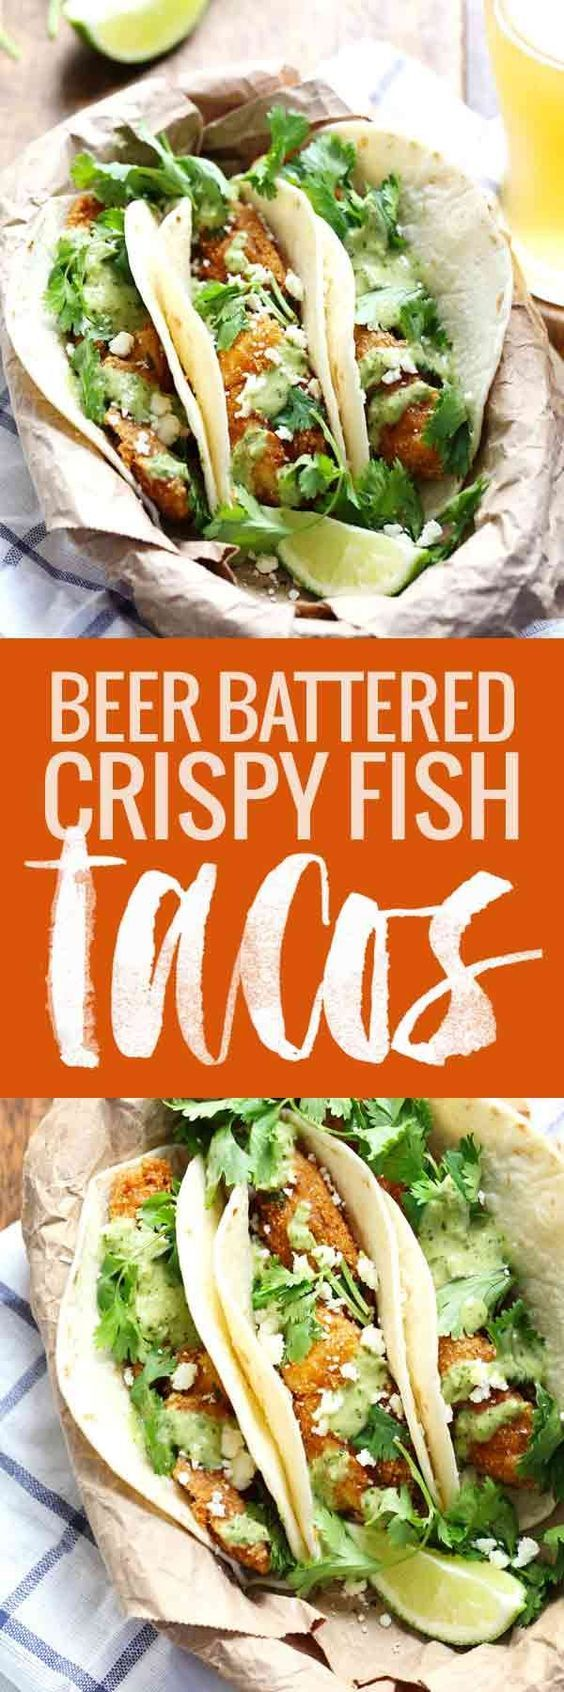 Crispy Fish Tacos with Jalapeño Sauce - lightly battered and fried fish served with a fresh spicy homemade sauce! simple and delicious.